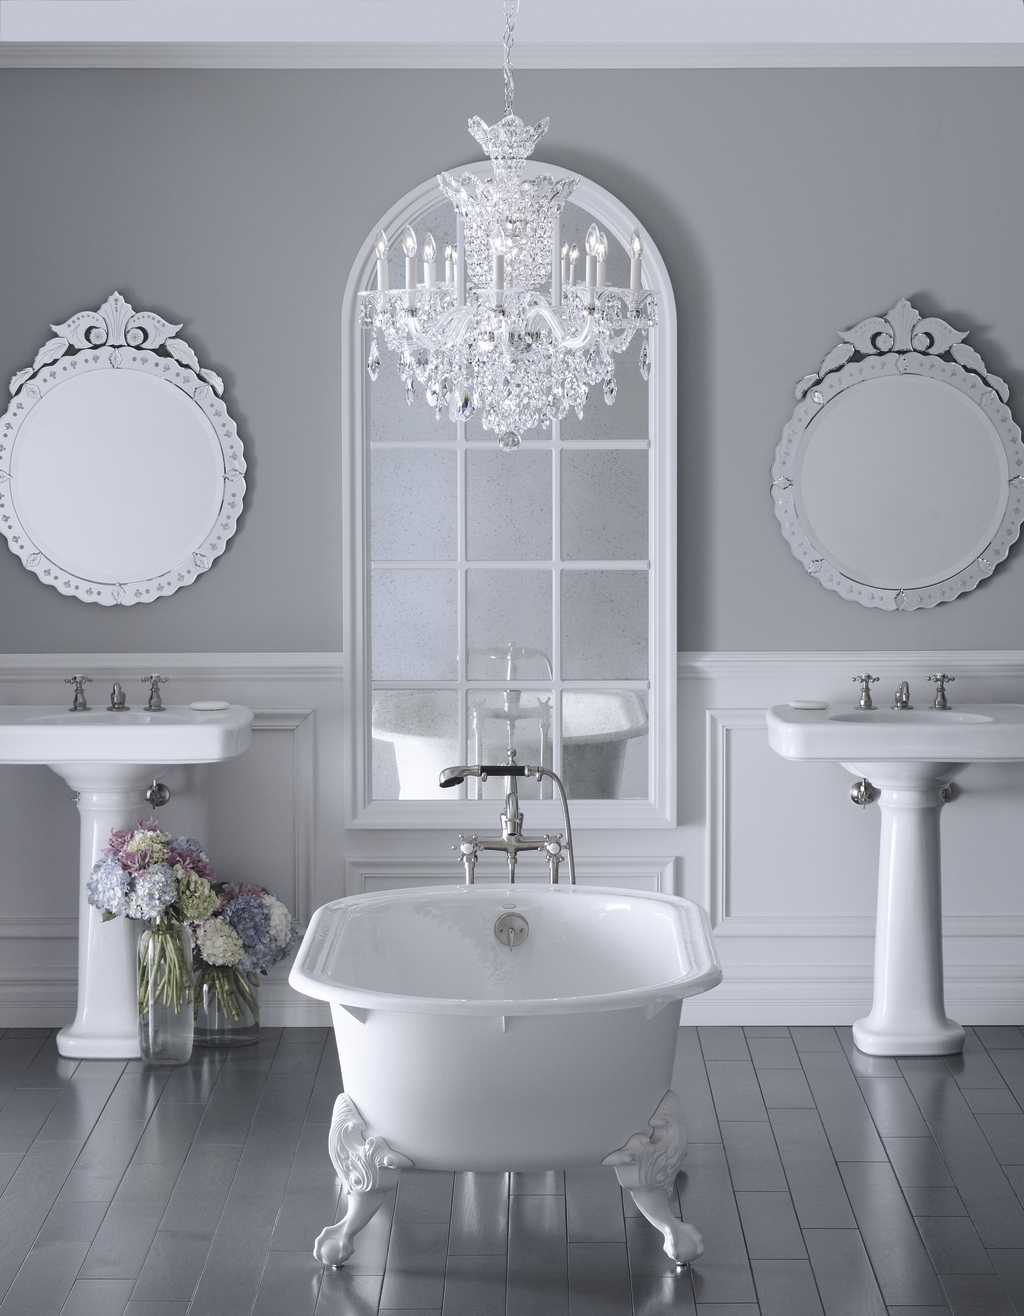 Bathroom Chandelier Lighting Pertaining To Mini Bathroom Chandeliers (View 10 of 15)